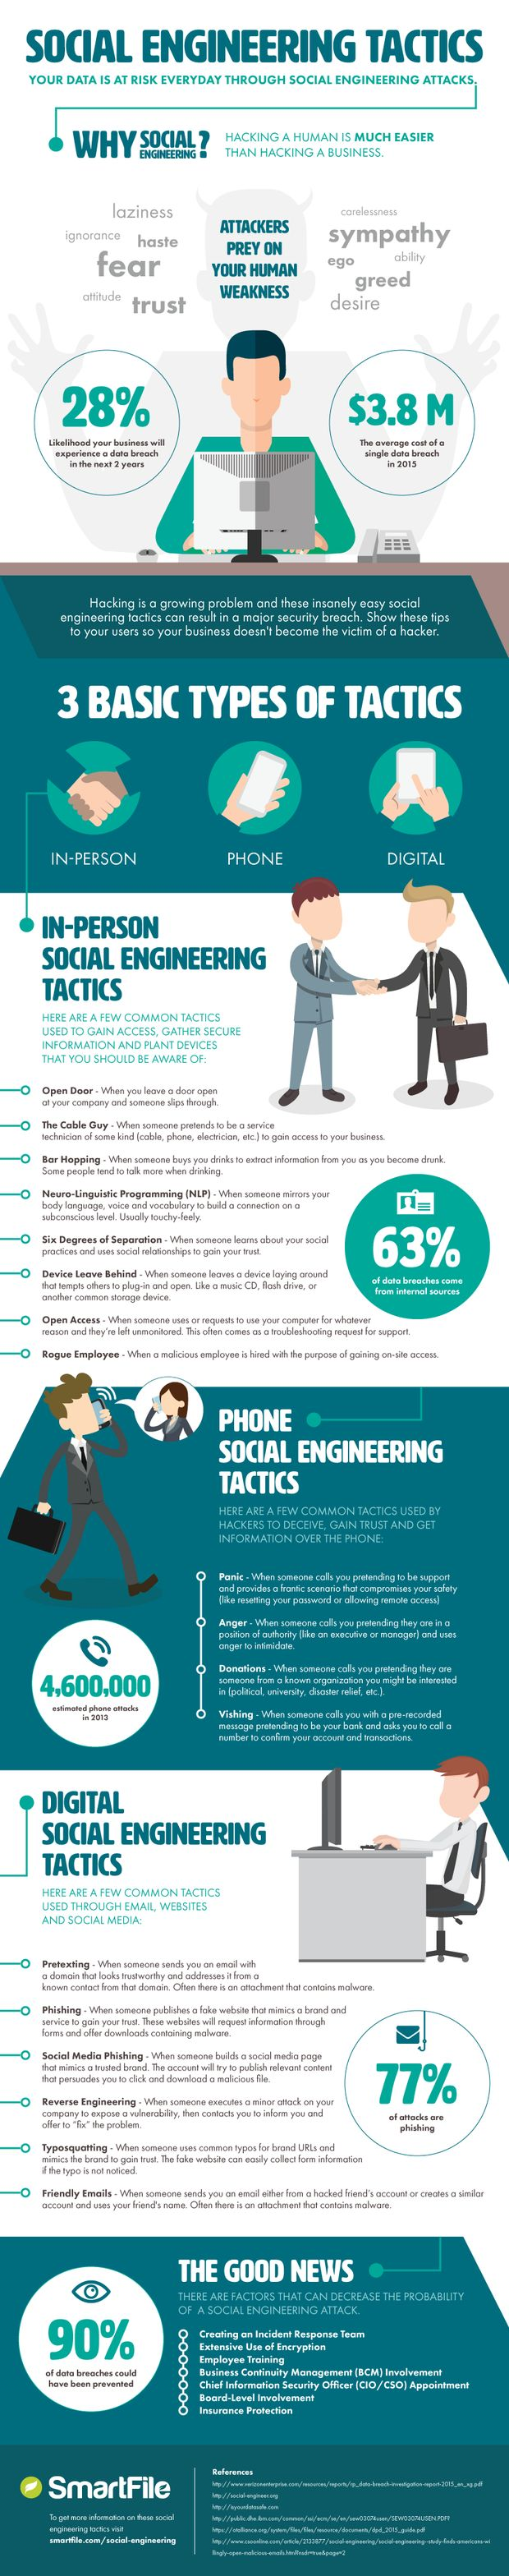 Social Engineering 101: 18 ways to hack a human. This is a great INFOGRAPHIC that's a fast way to give someone security awareness training.